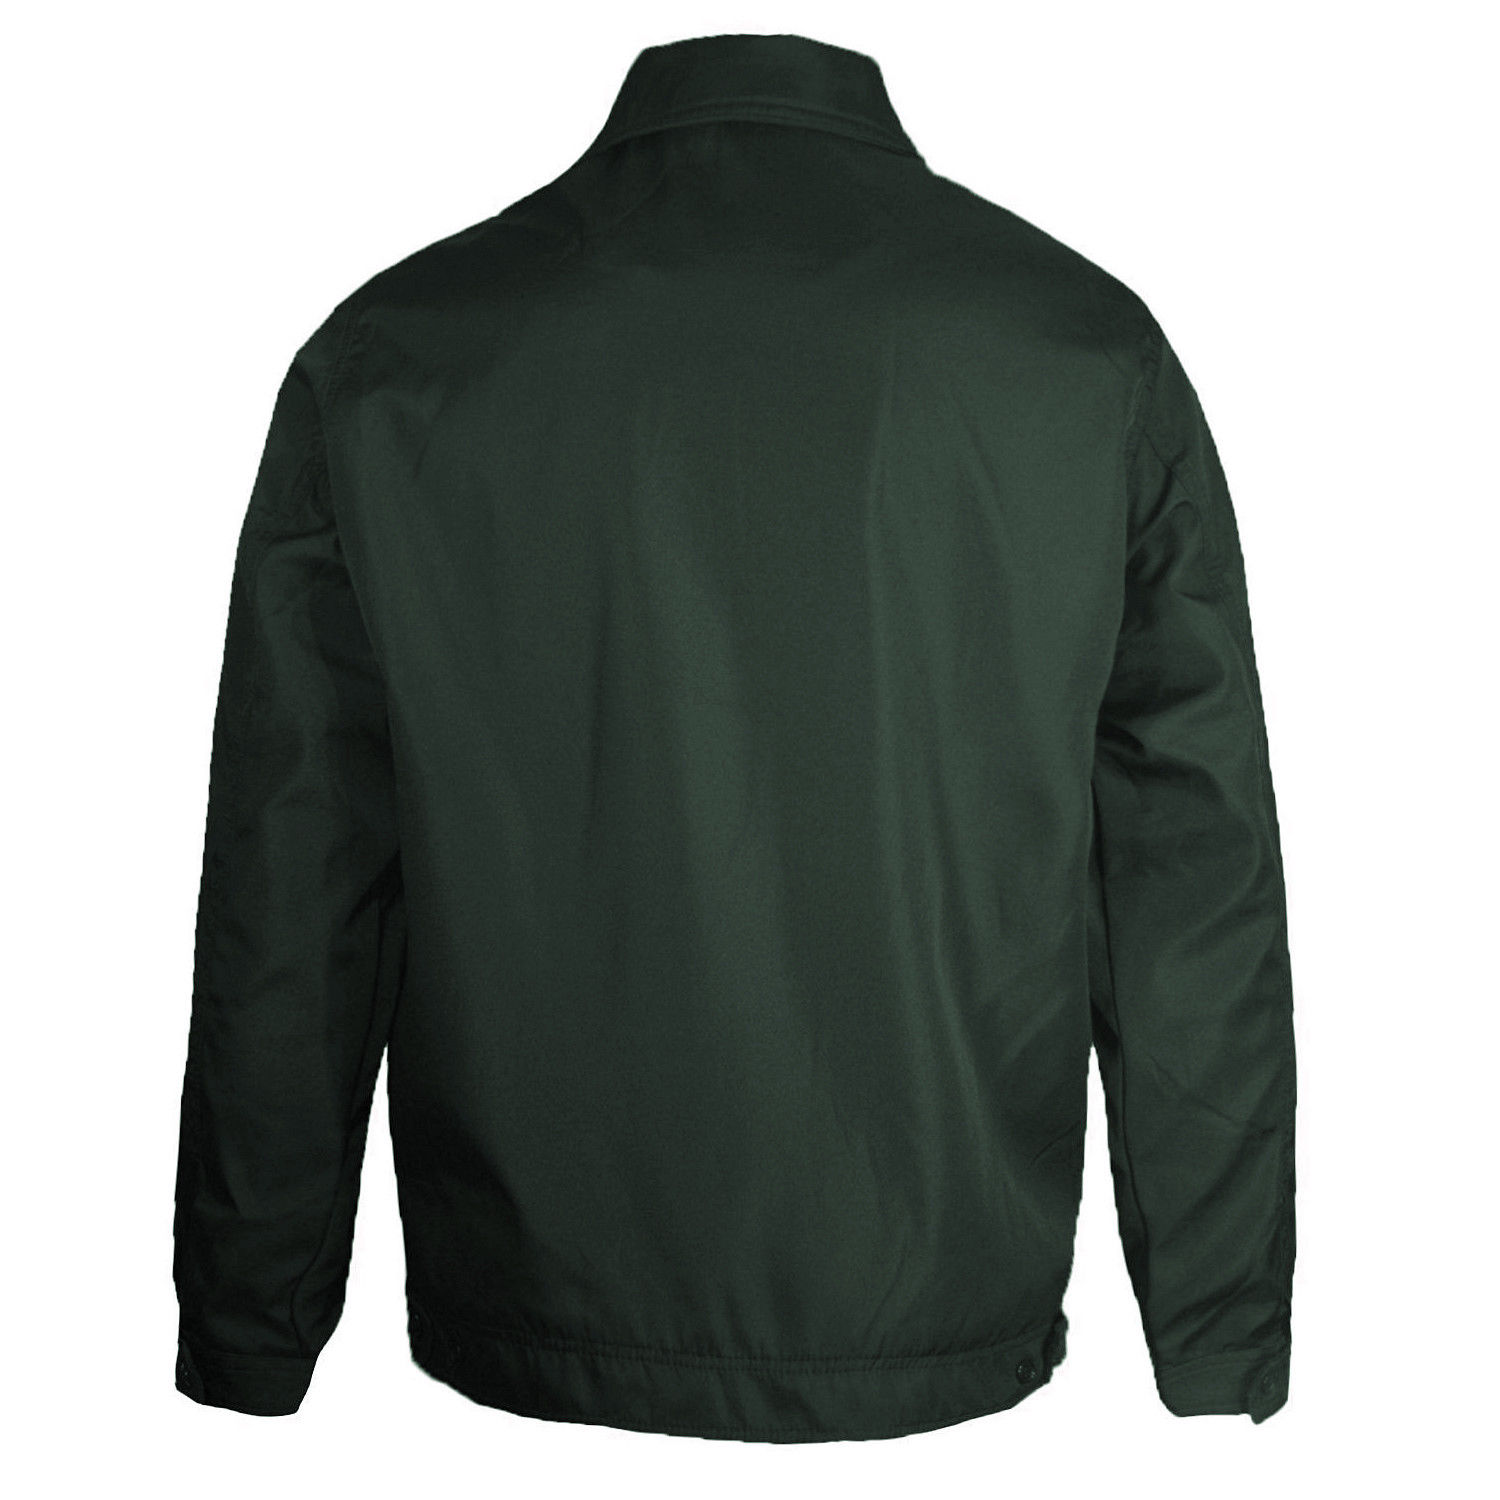 Men-039-s-Microfiber-Golf-Sport-Water-Resistant-Zip-Up-Windbreaker-Jacket-BENNY thumbnail 24